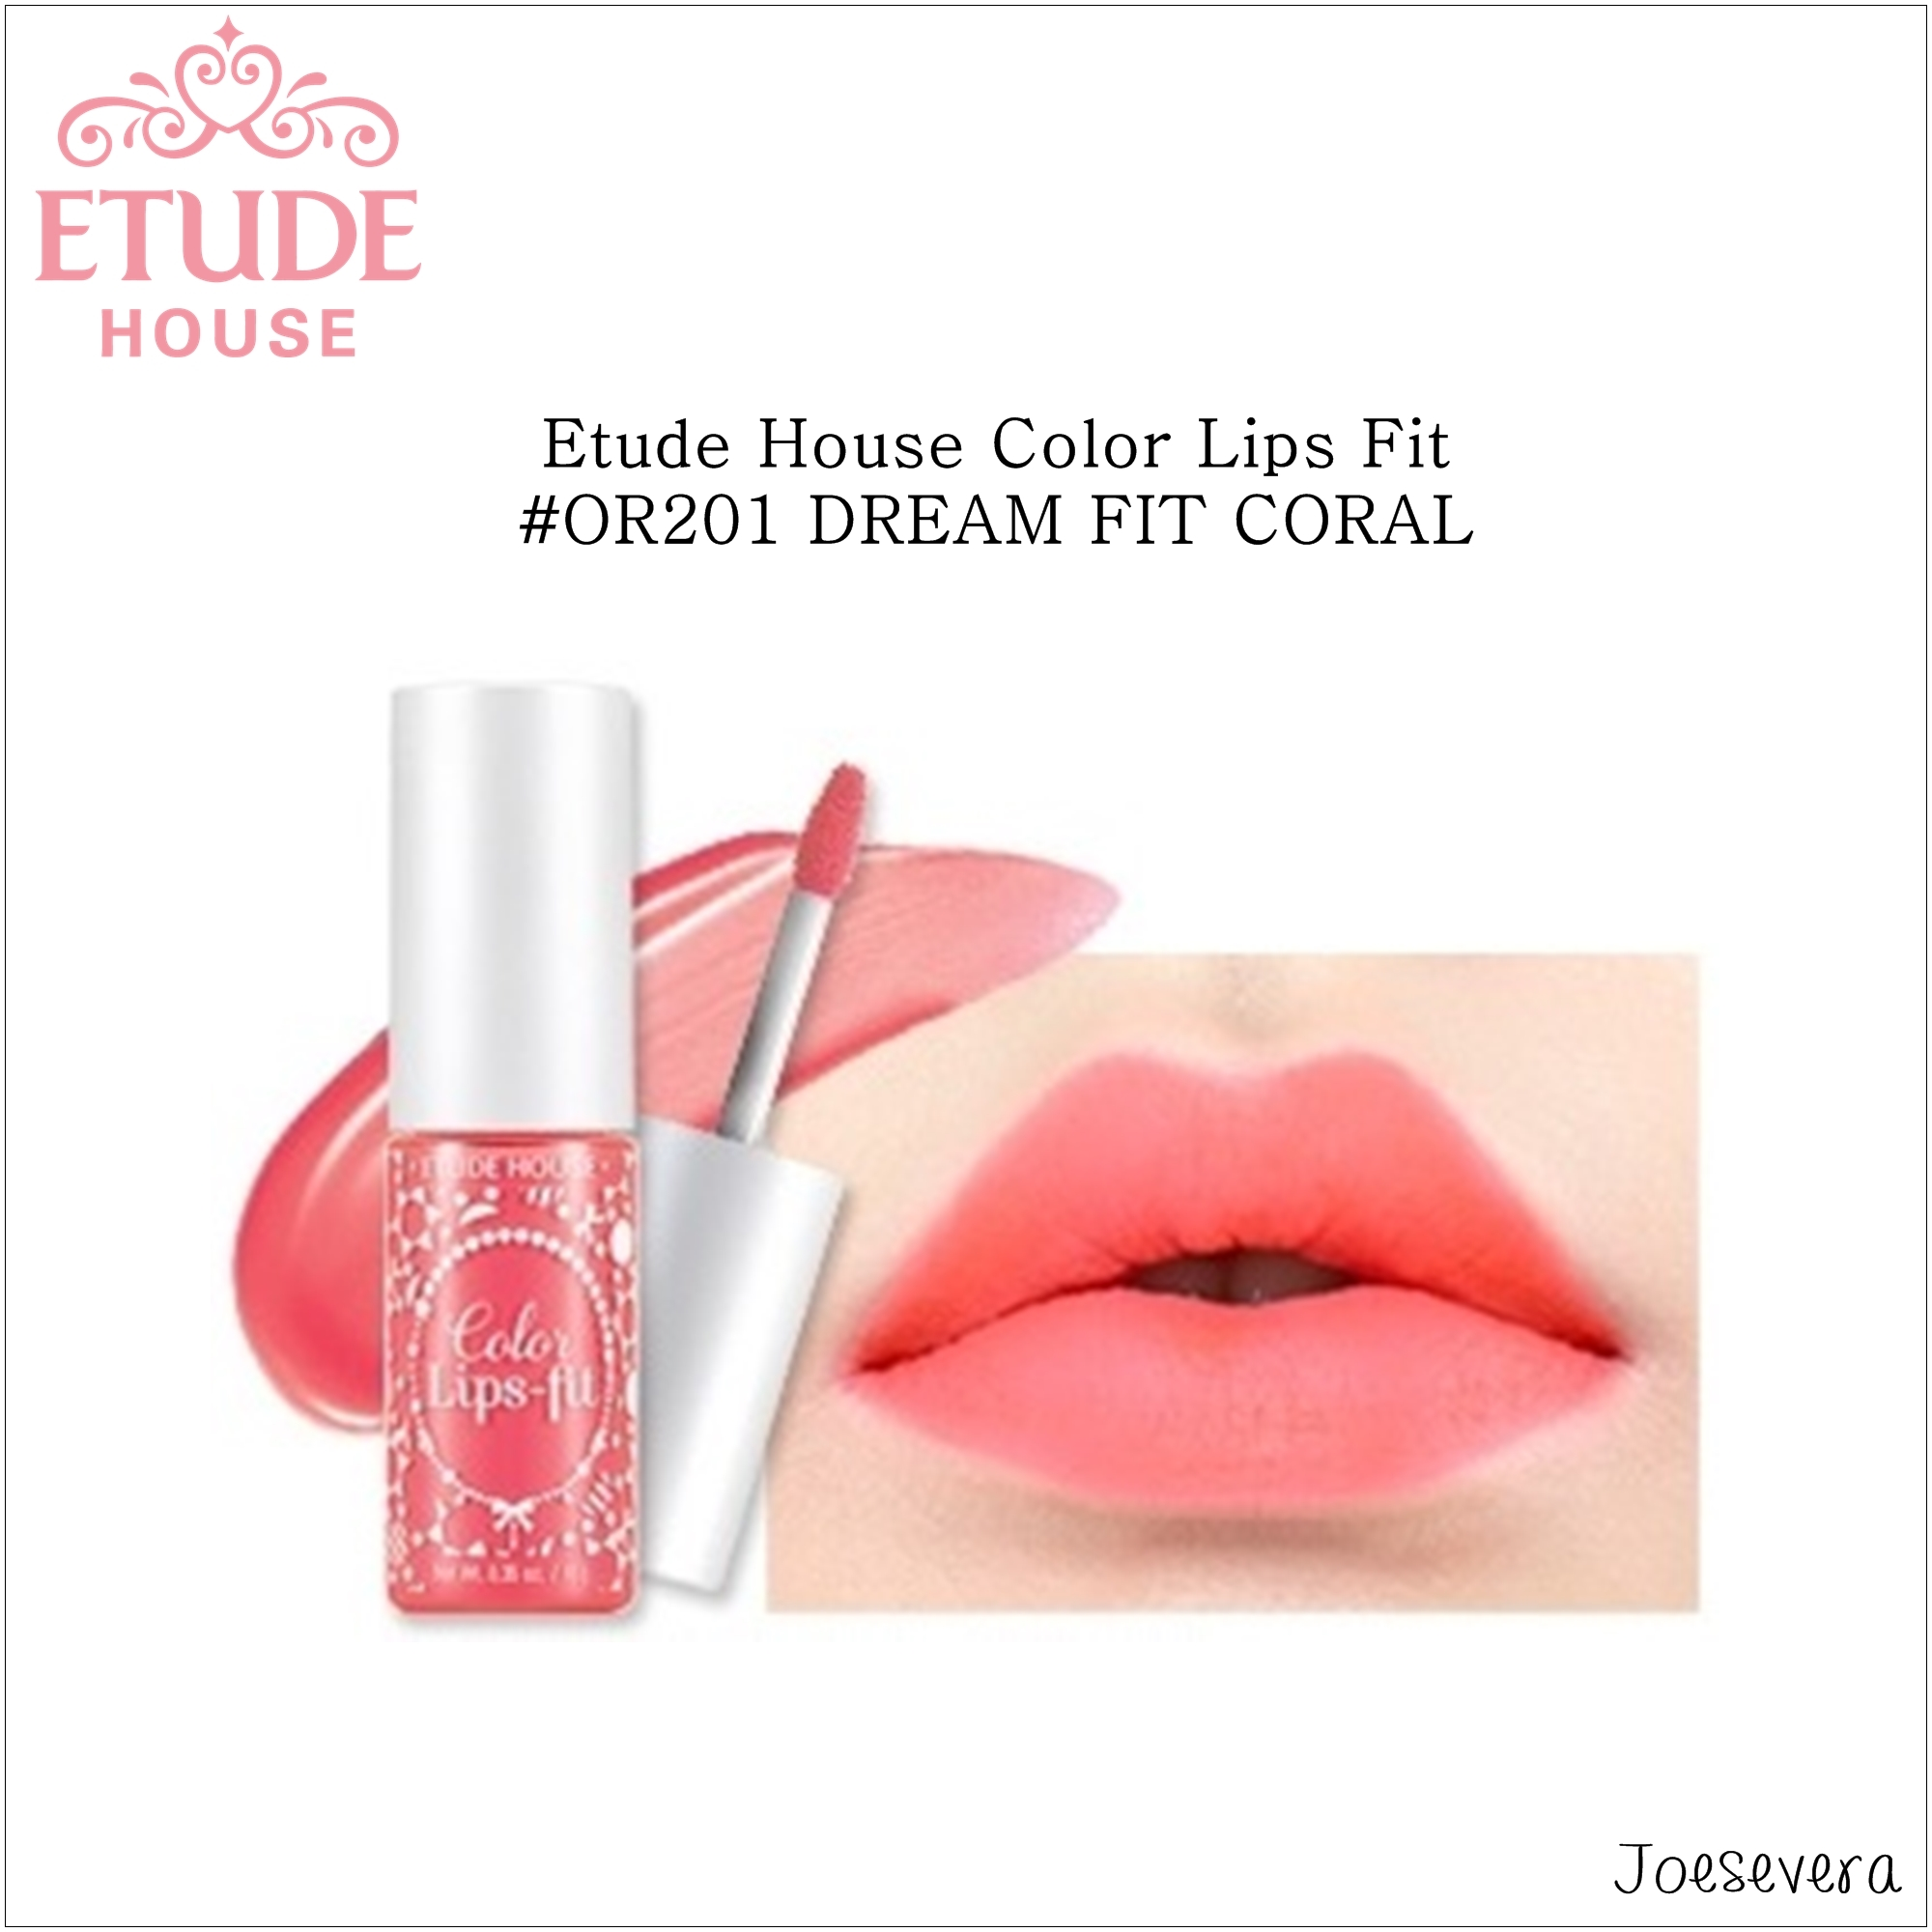 Jual Etude House Color Lips Fit #OR201 DREAM FIT CORAL - Joesevera ...